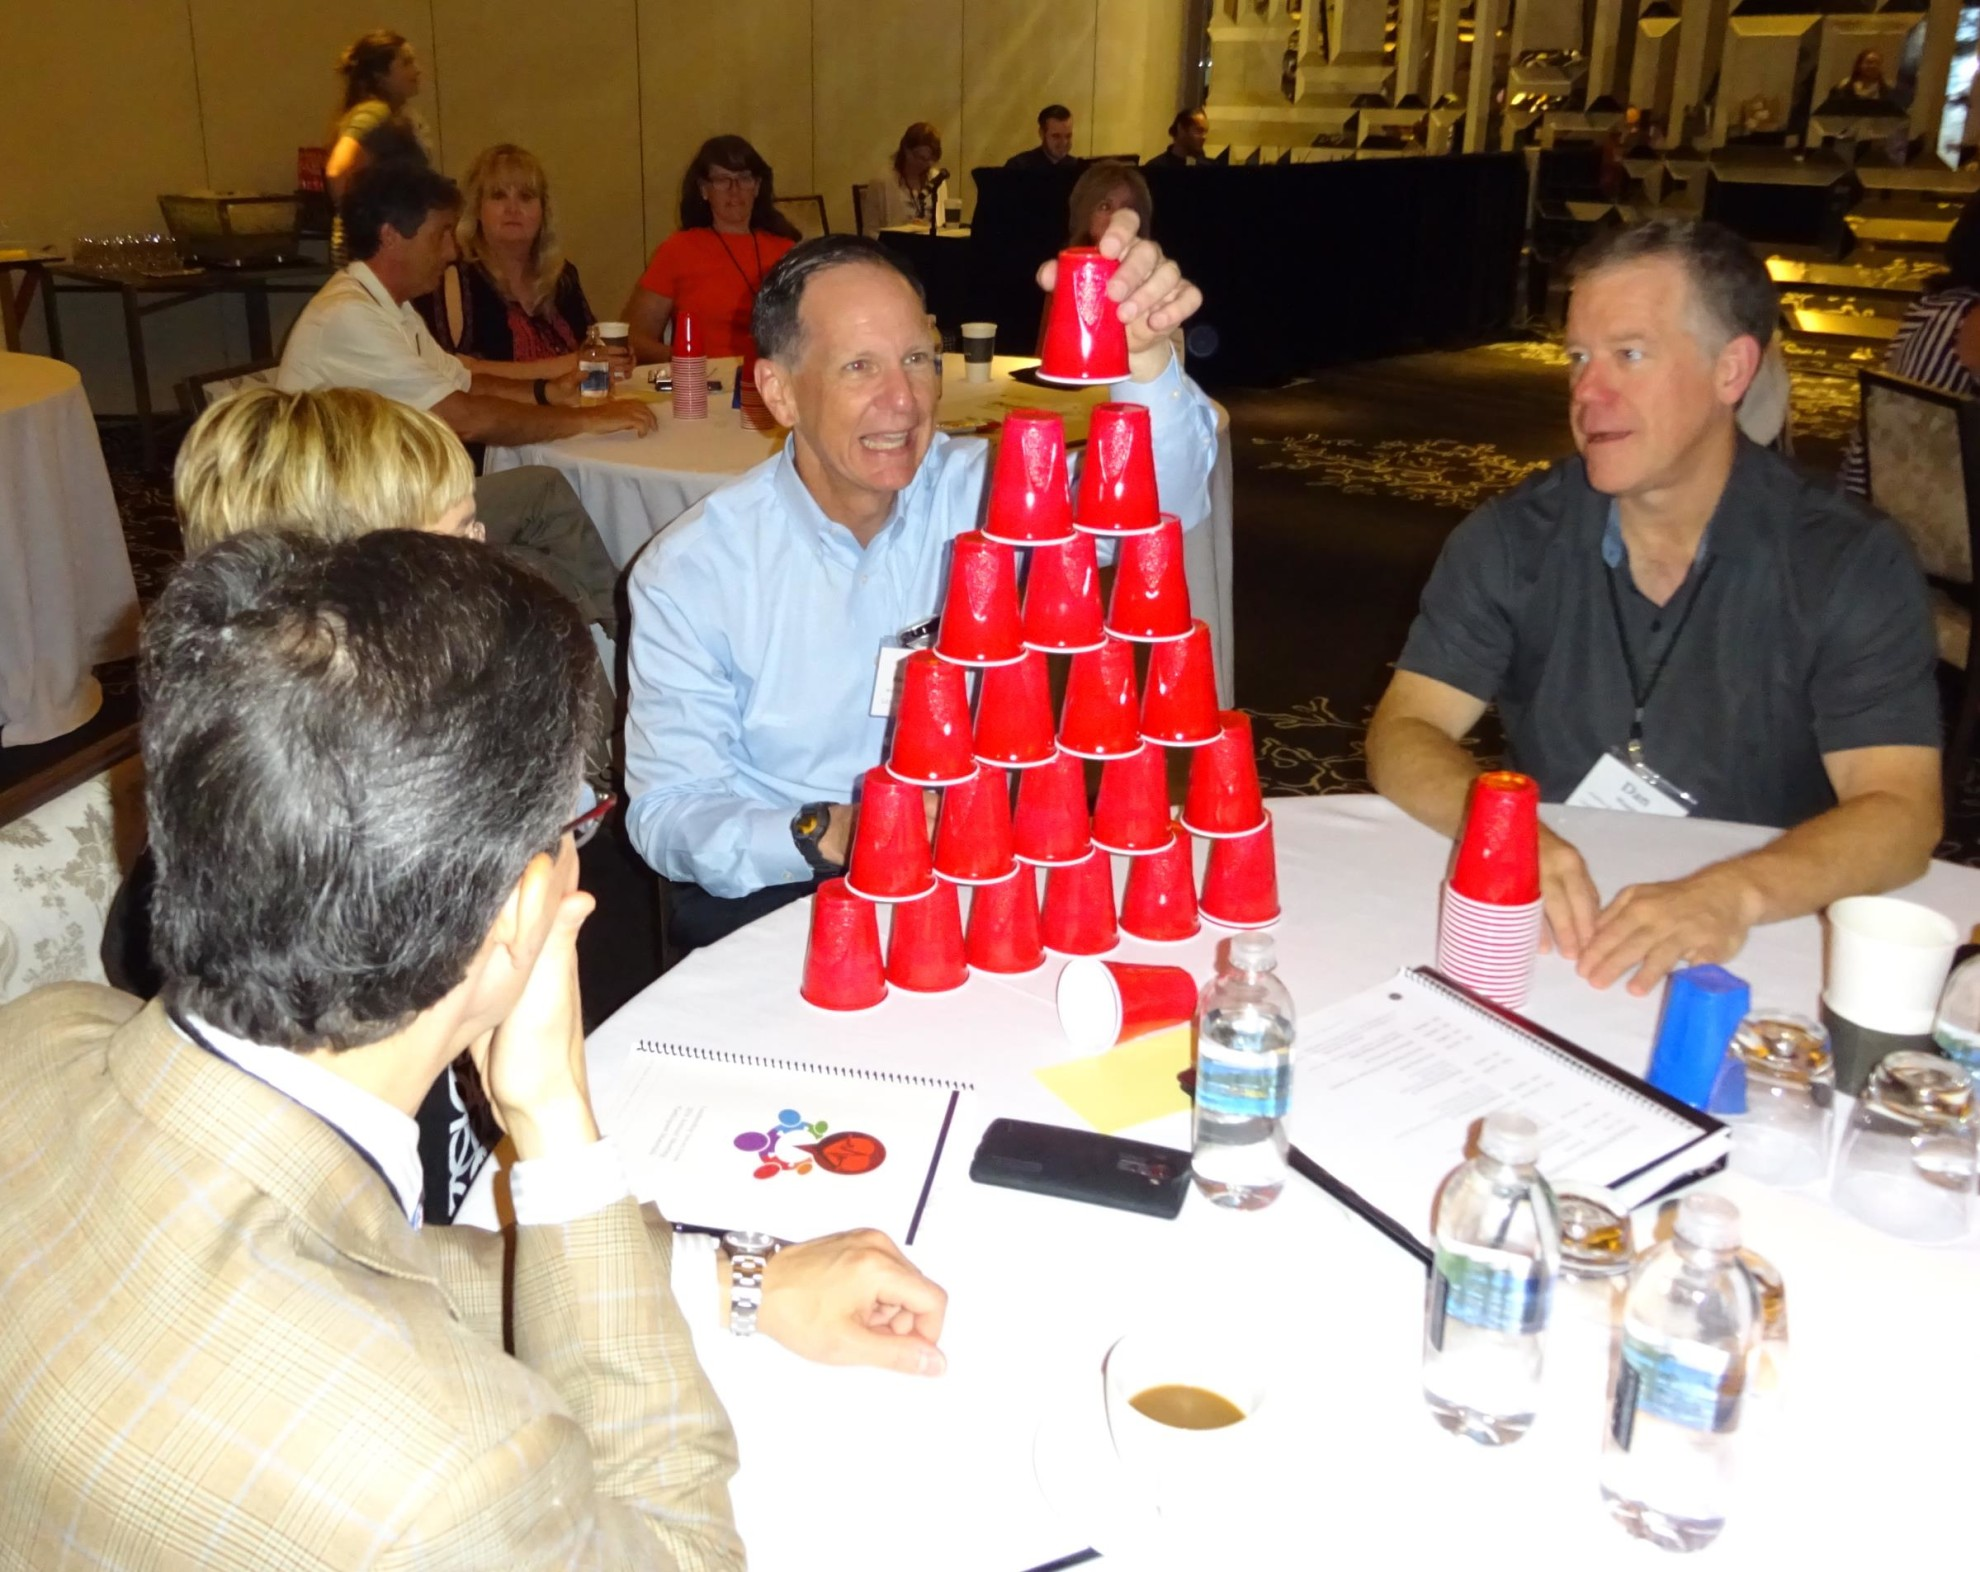 Group activity at the Leadership Saves Lives annual meeting